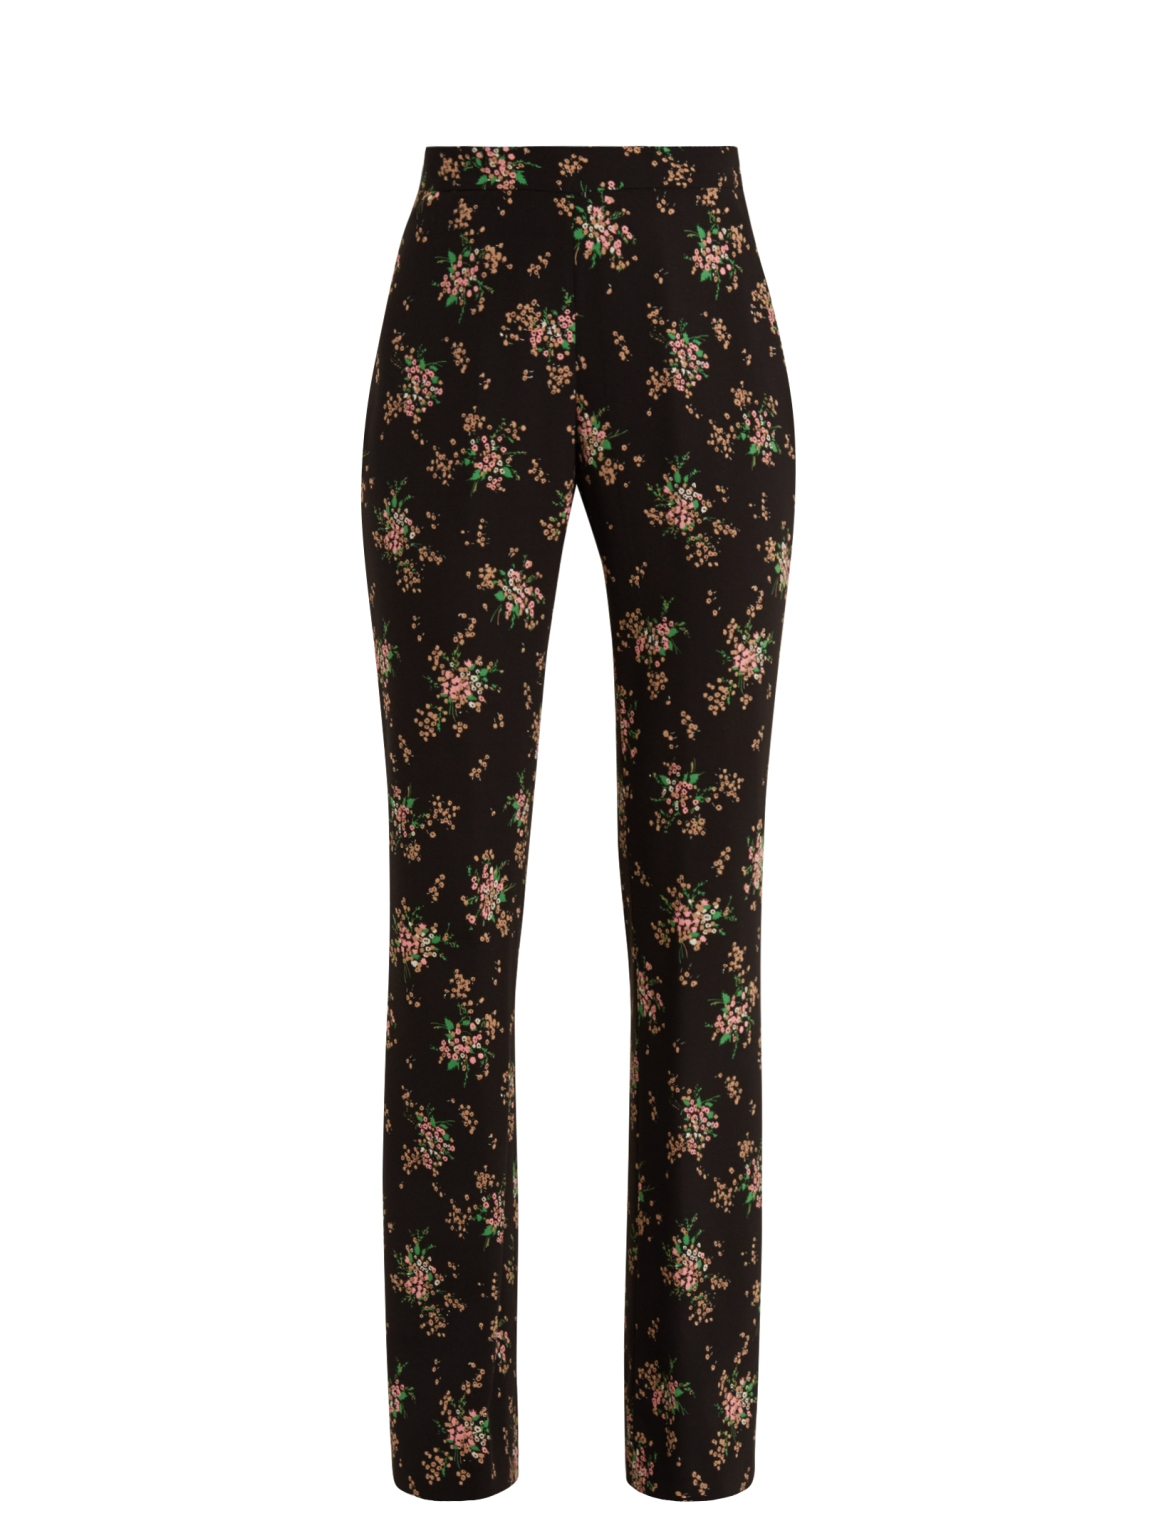 msgm high rise floral printe crepe trousers.jpg